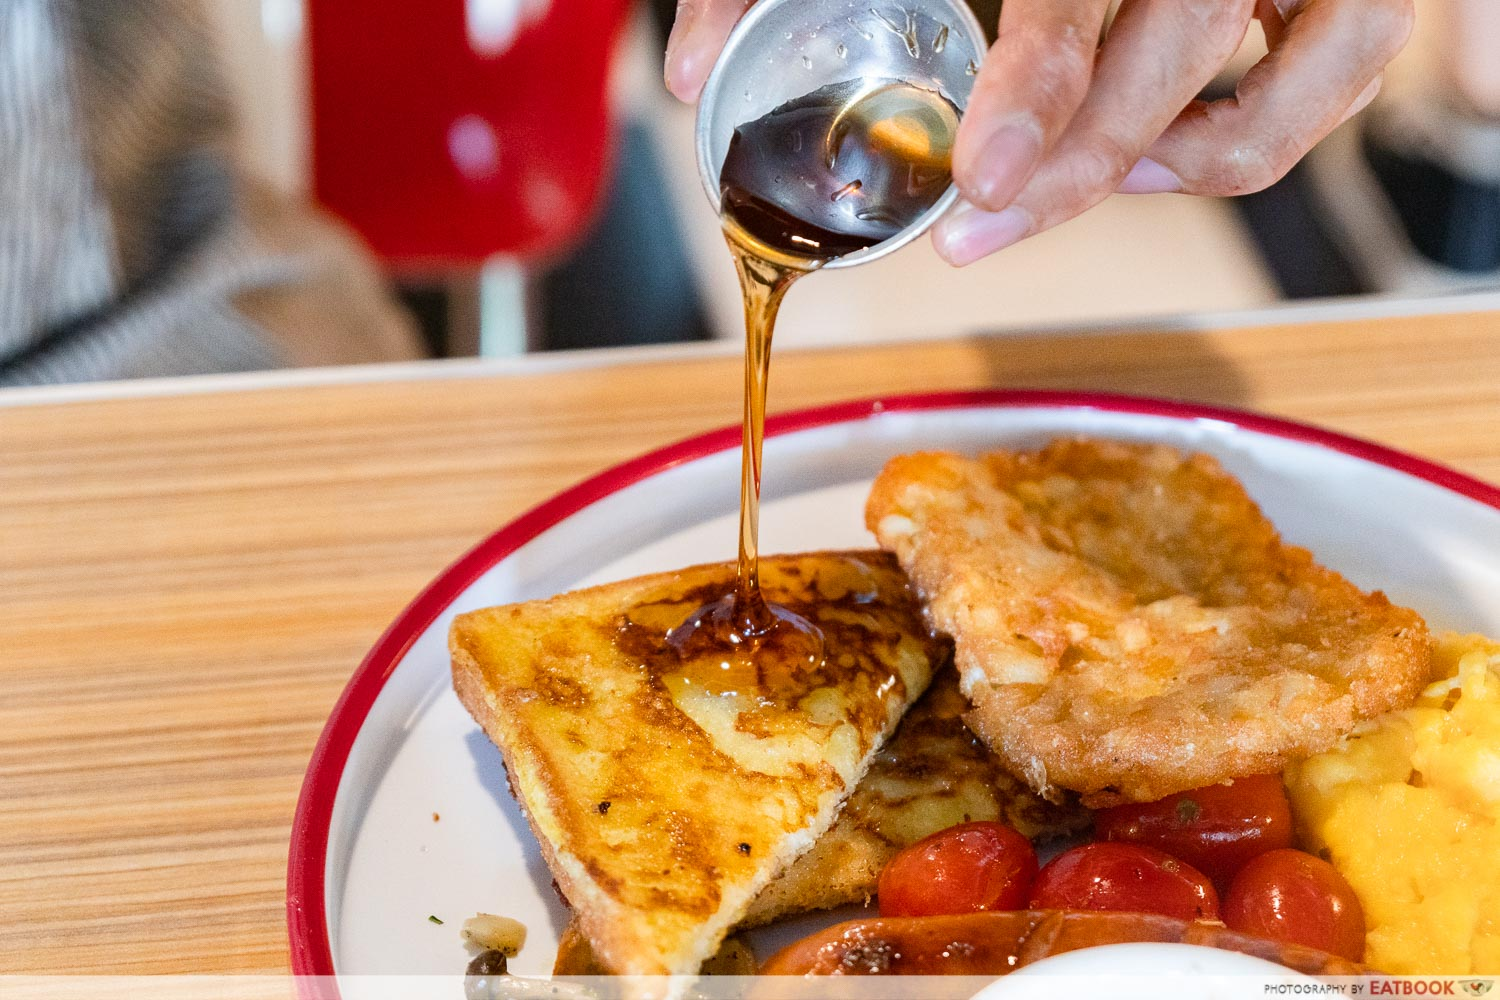 Joji's Diner - maple syrup pour